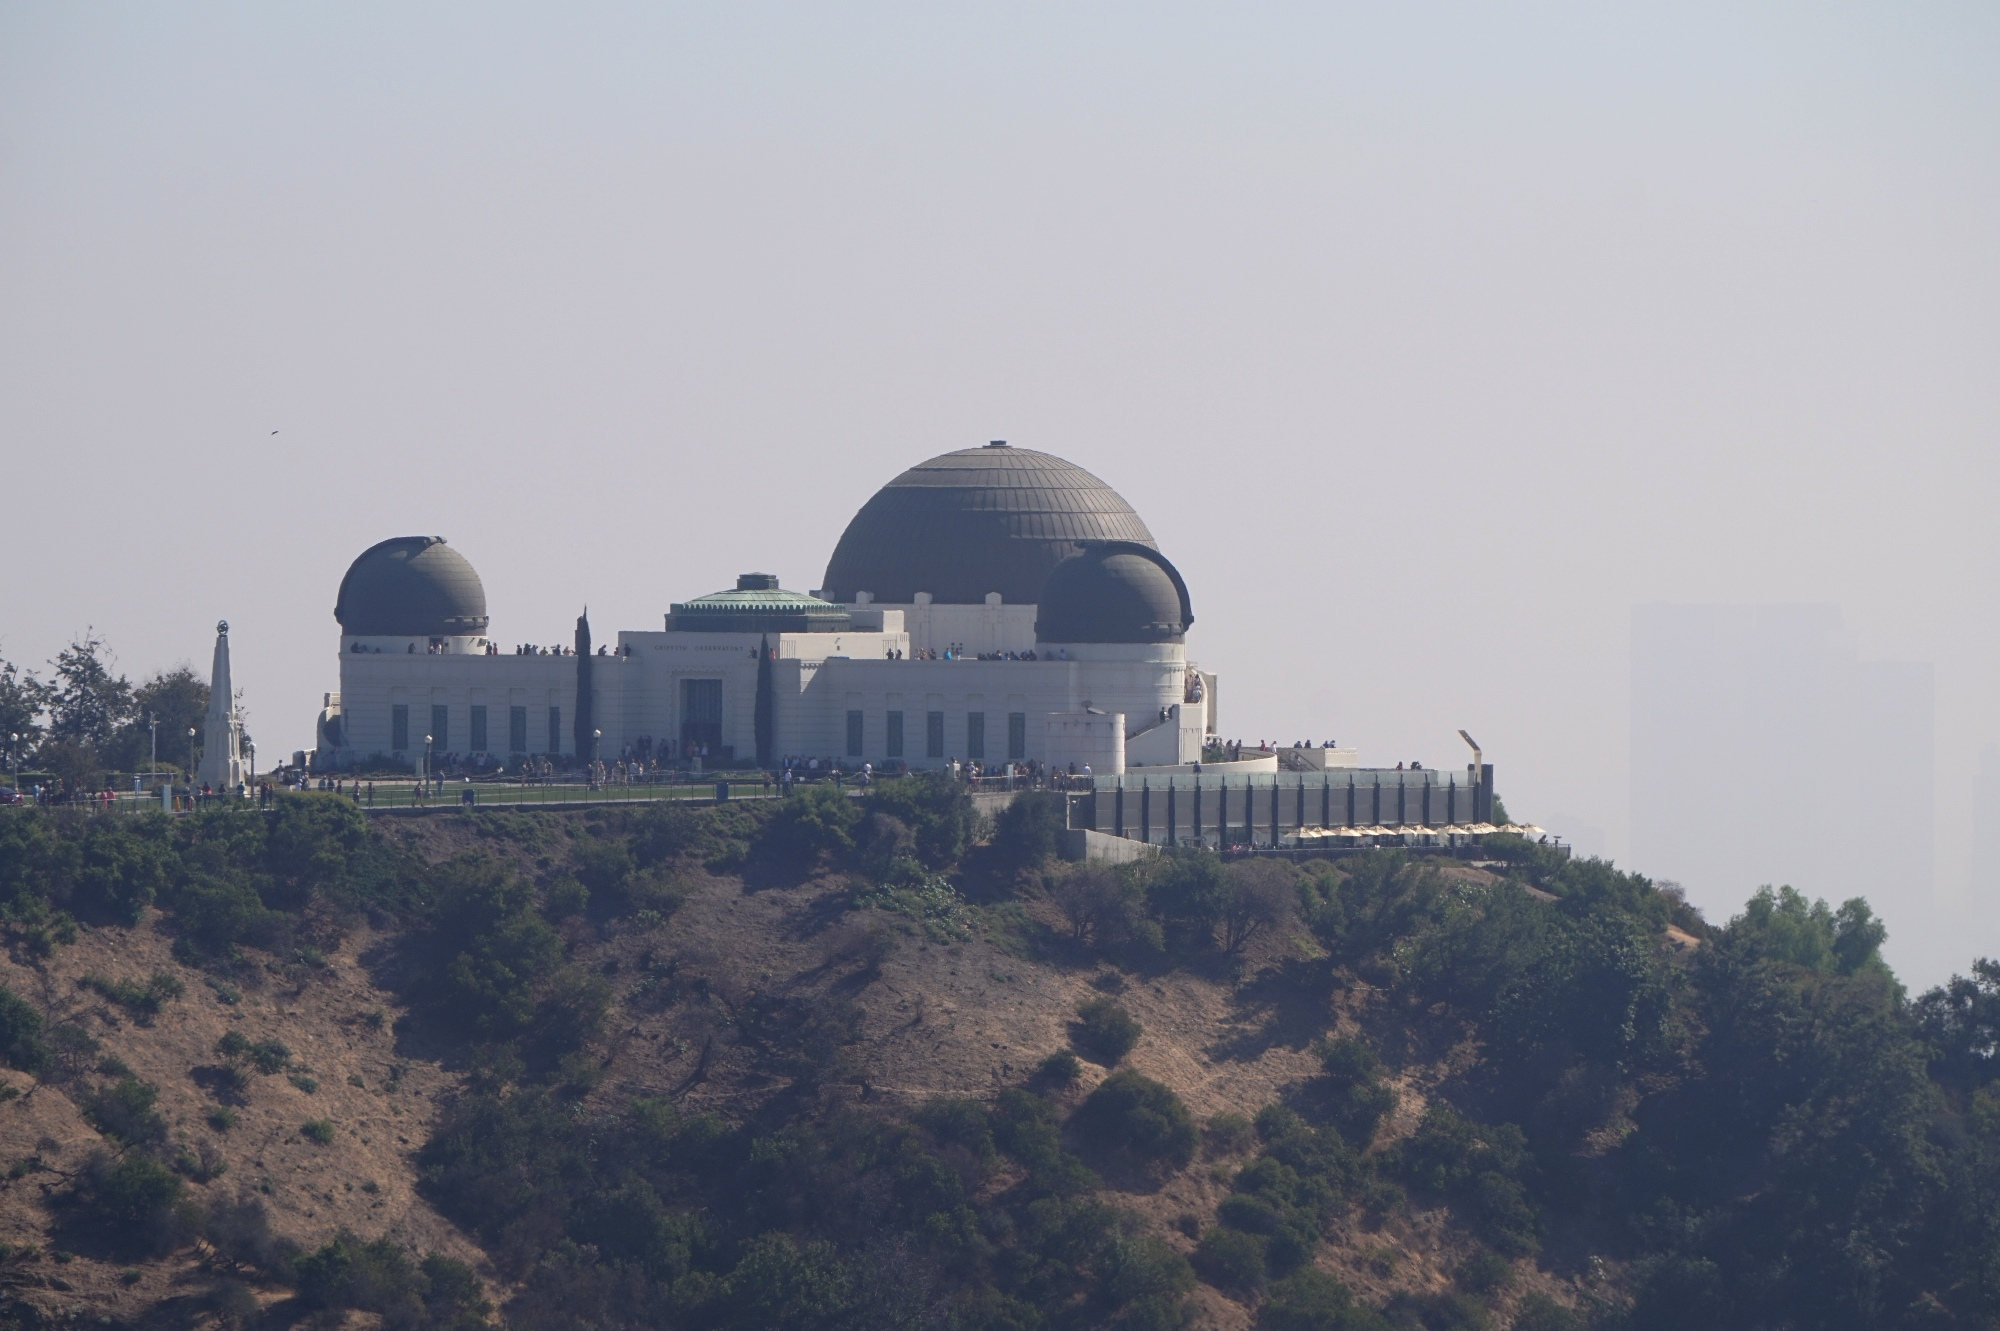 Das Griffith-Observatorium in den Hollywood Hills.